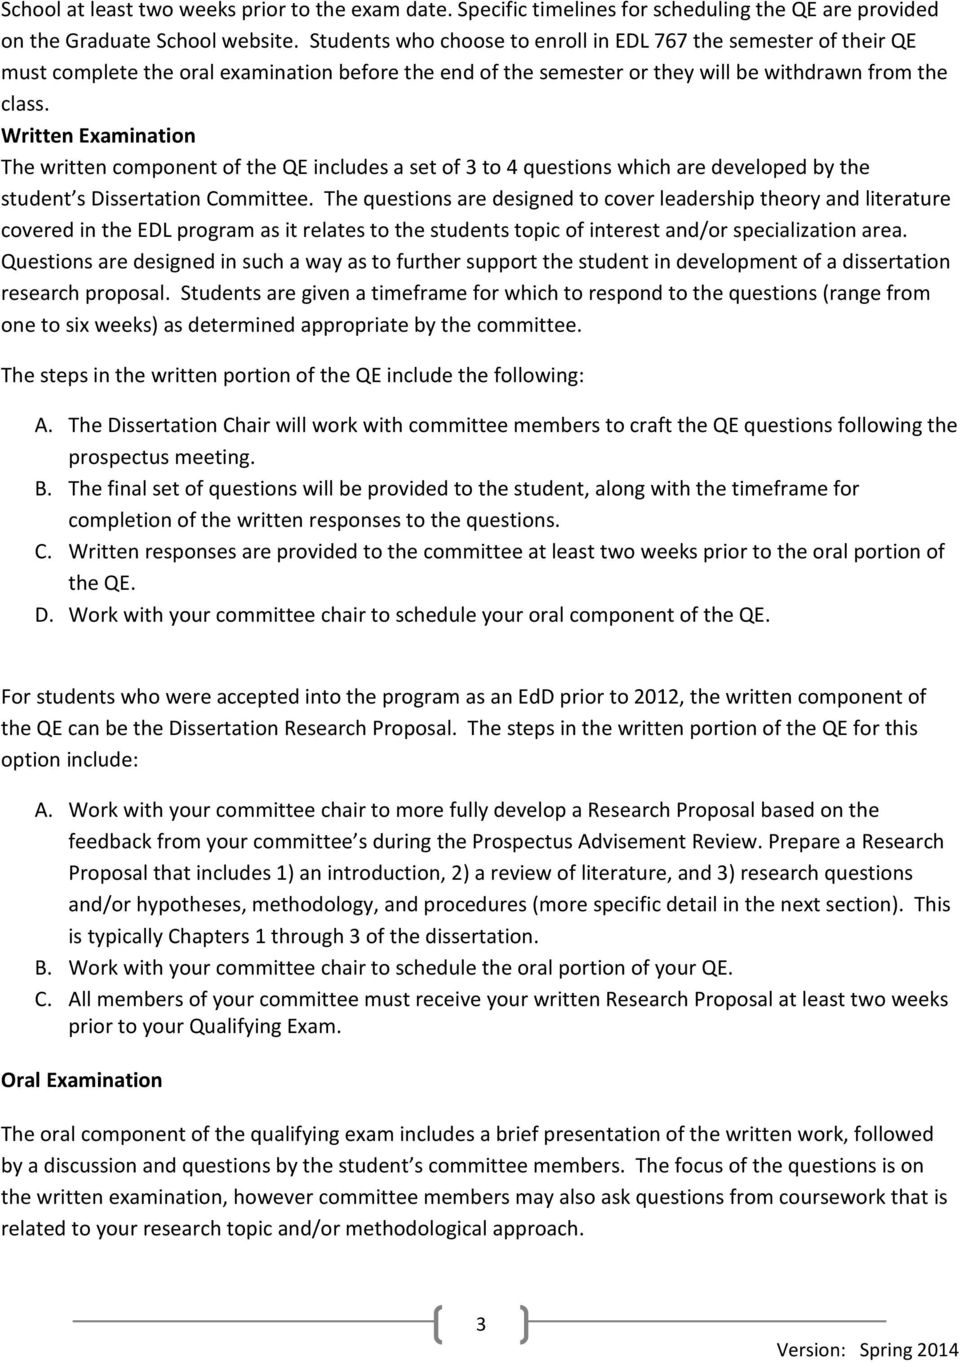 Written Examination The written component of the QE includes a set of 3 to 4 questions which are developed by the student s Dissertation Committee.